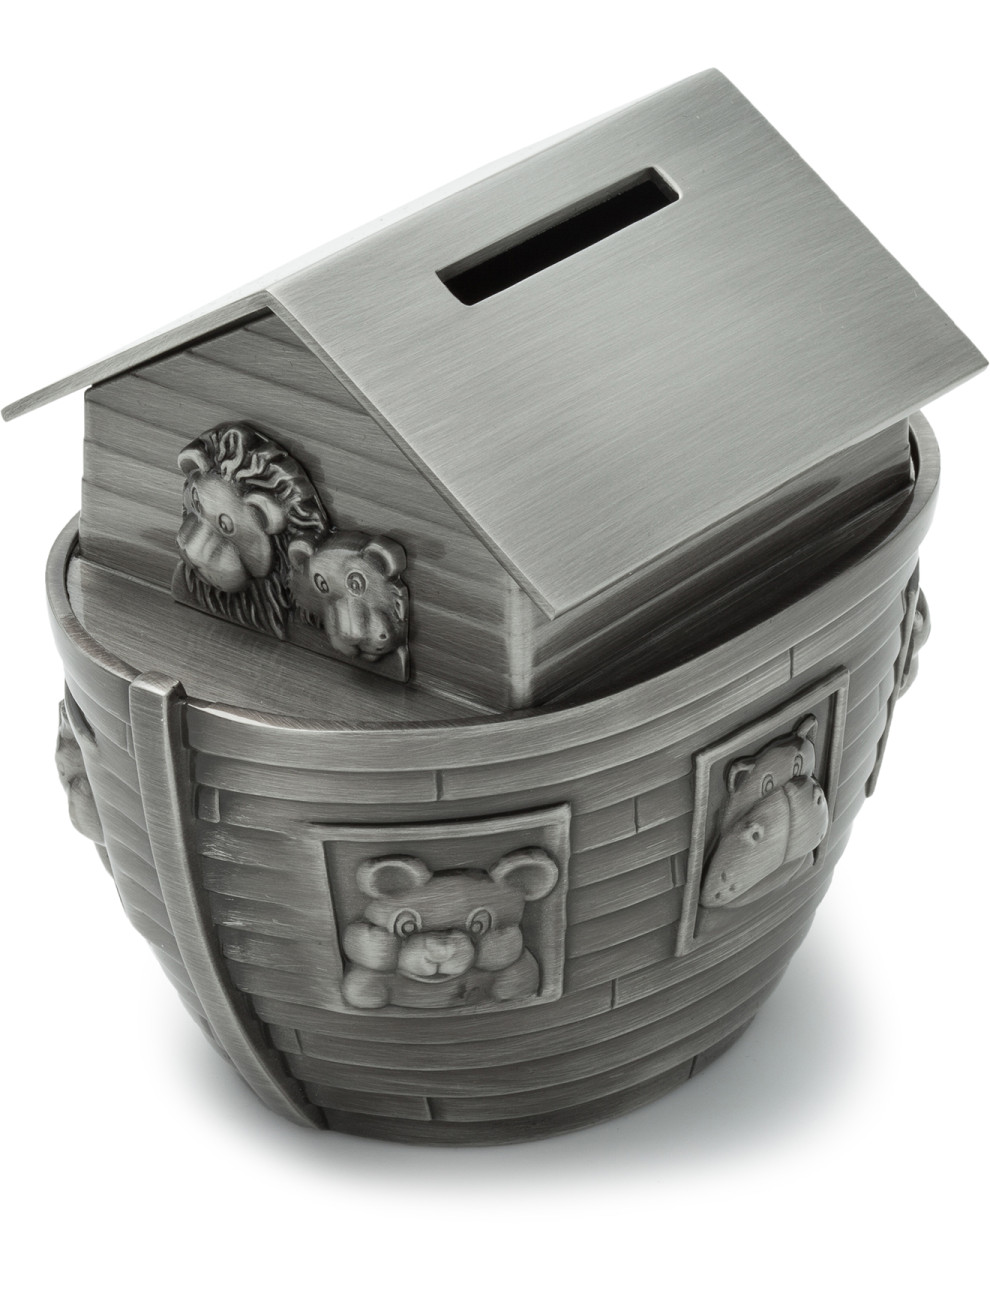 NOAH'S ARK MONEY BOX - PEWTER FINISH